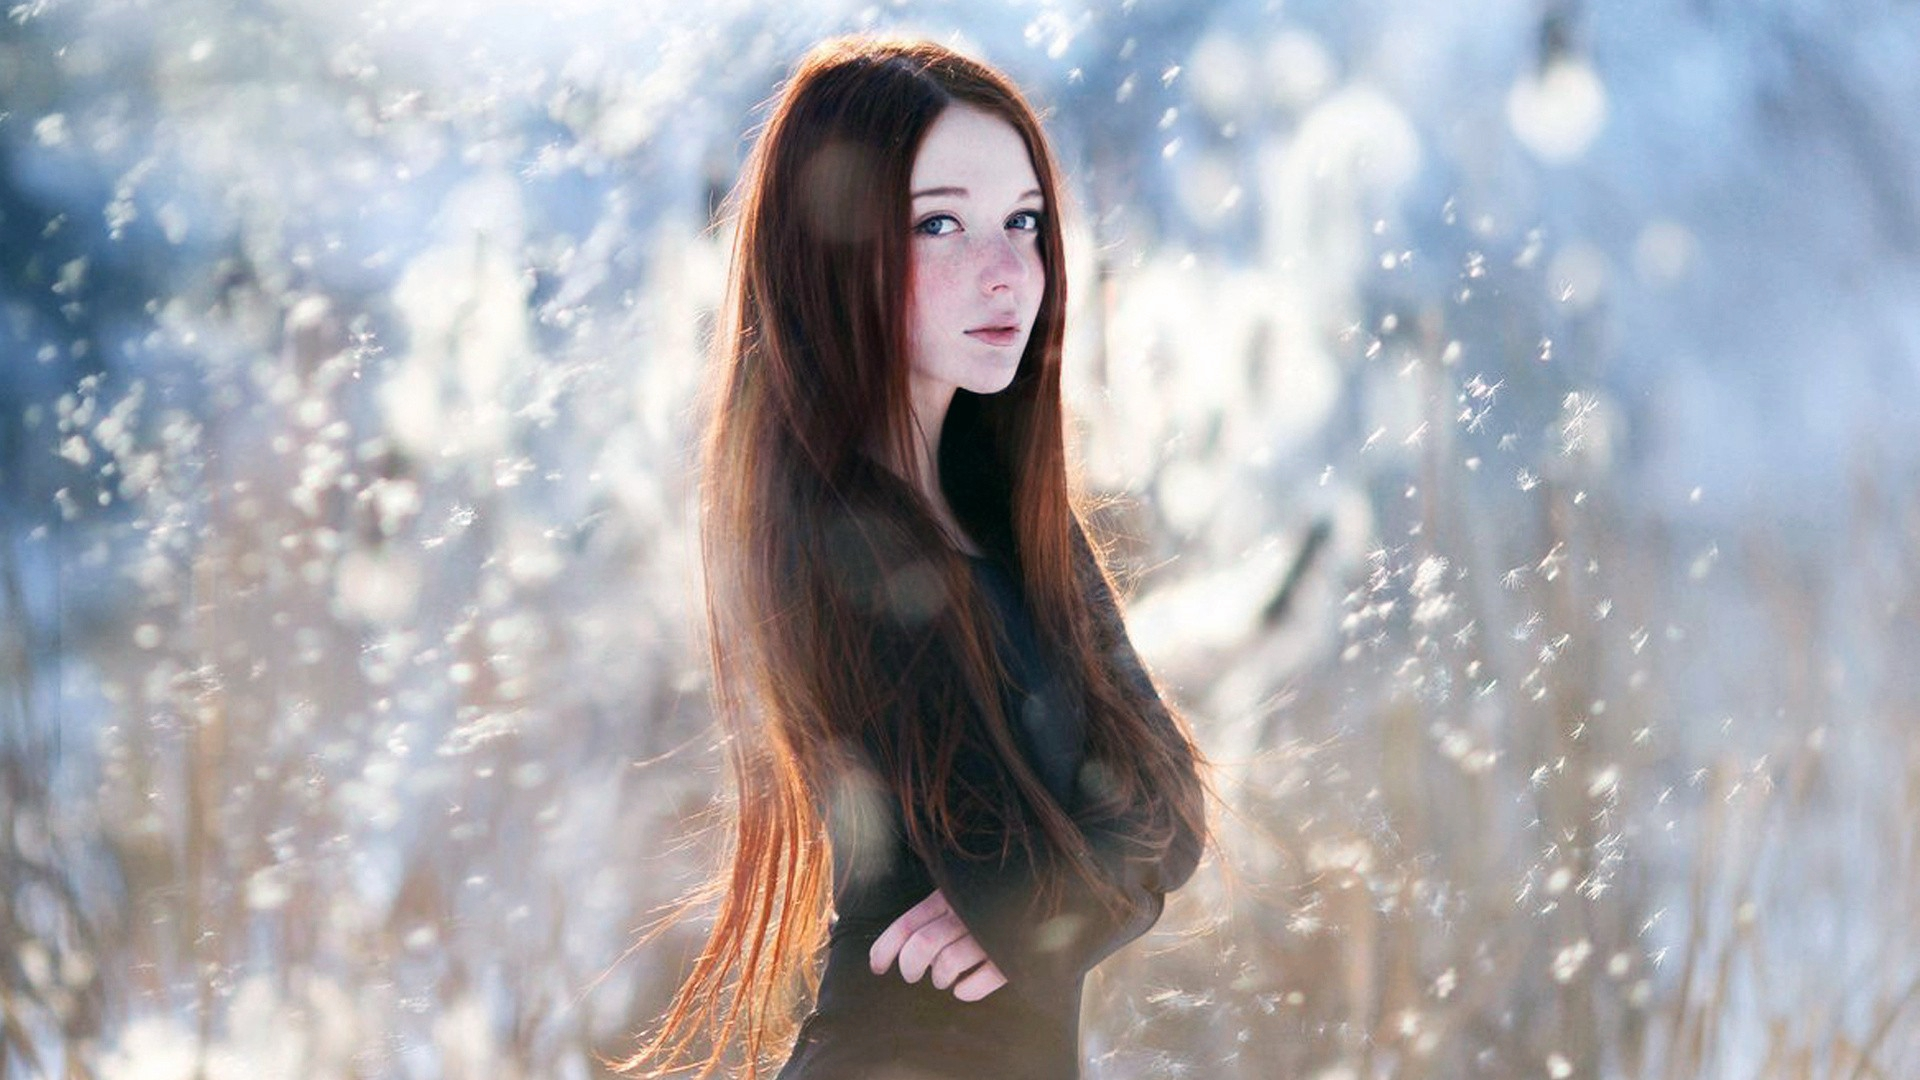 Free Download Cute Angel Wallpapers First Hd Wallpapers 1920x1080 For Your Desktop Mobile Tablet Explore 97 Long Hair Wallpapers Long Hair Wallpapers Hair Stylist Wallpaper Wallpaper Hair Luxury